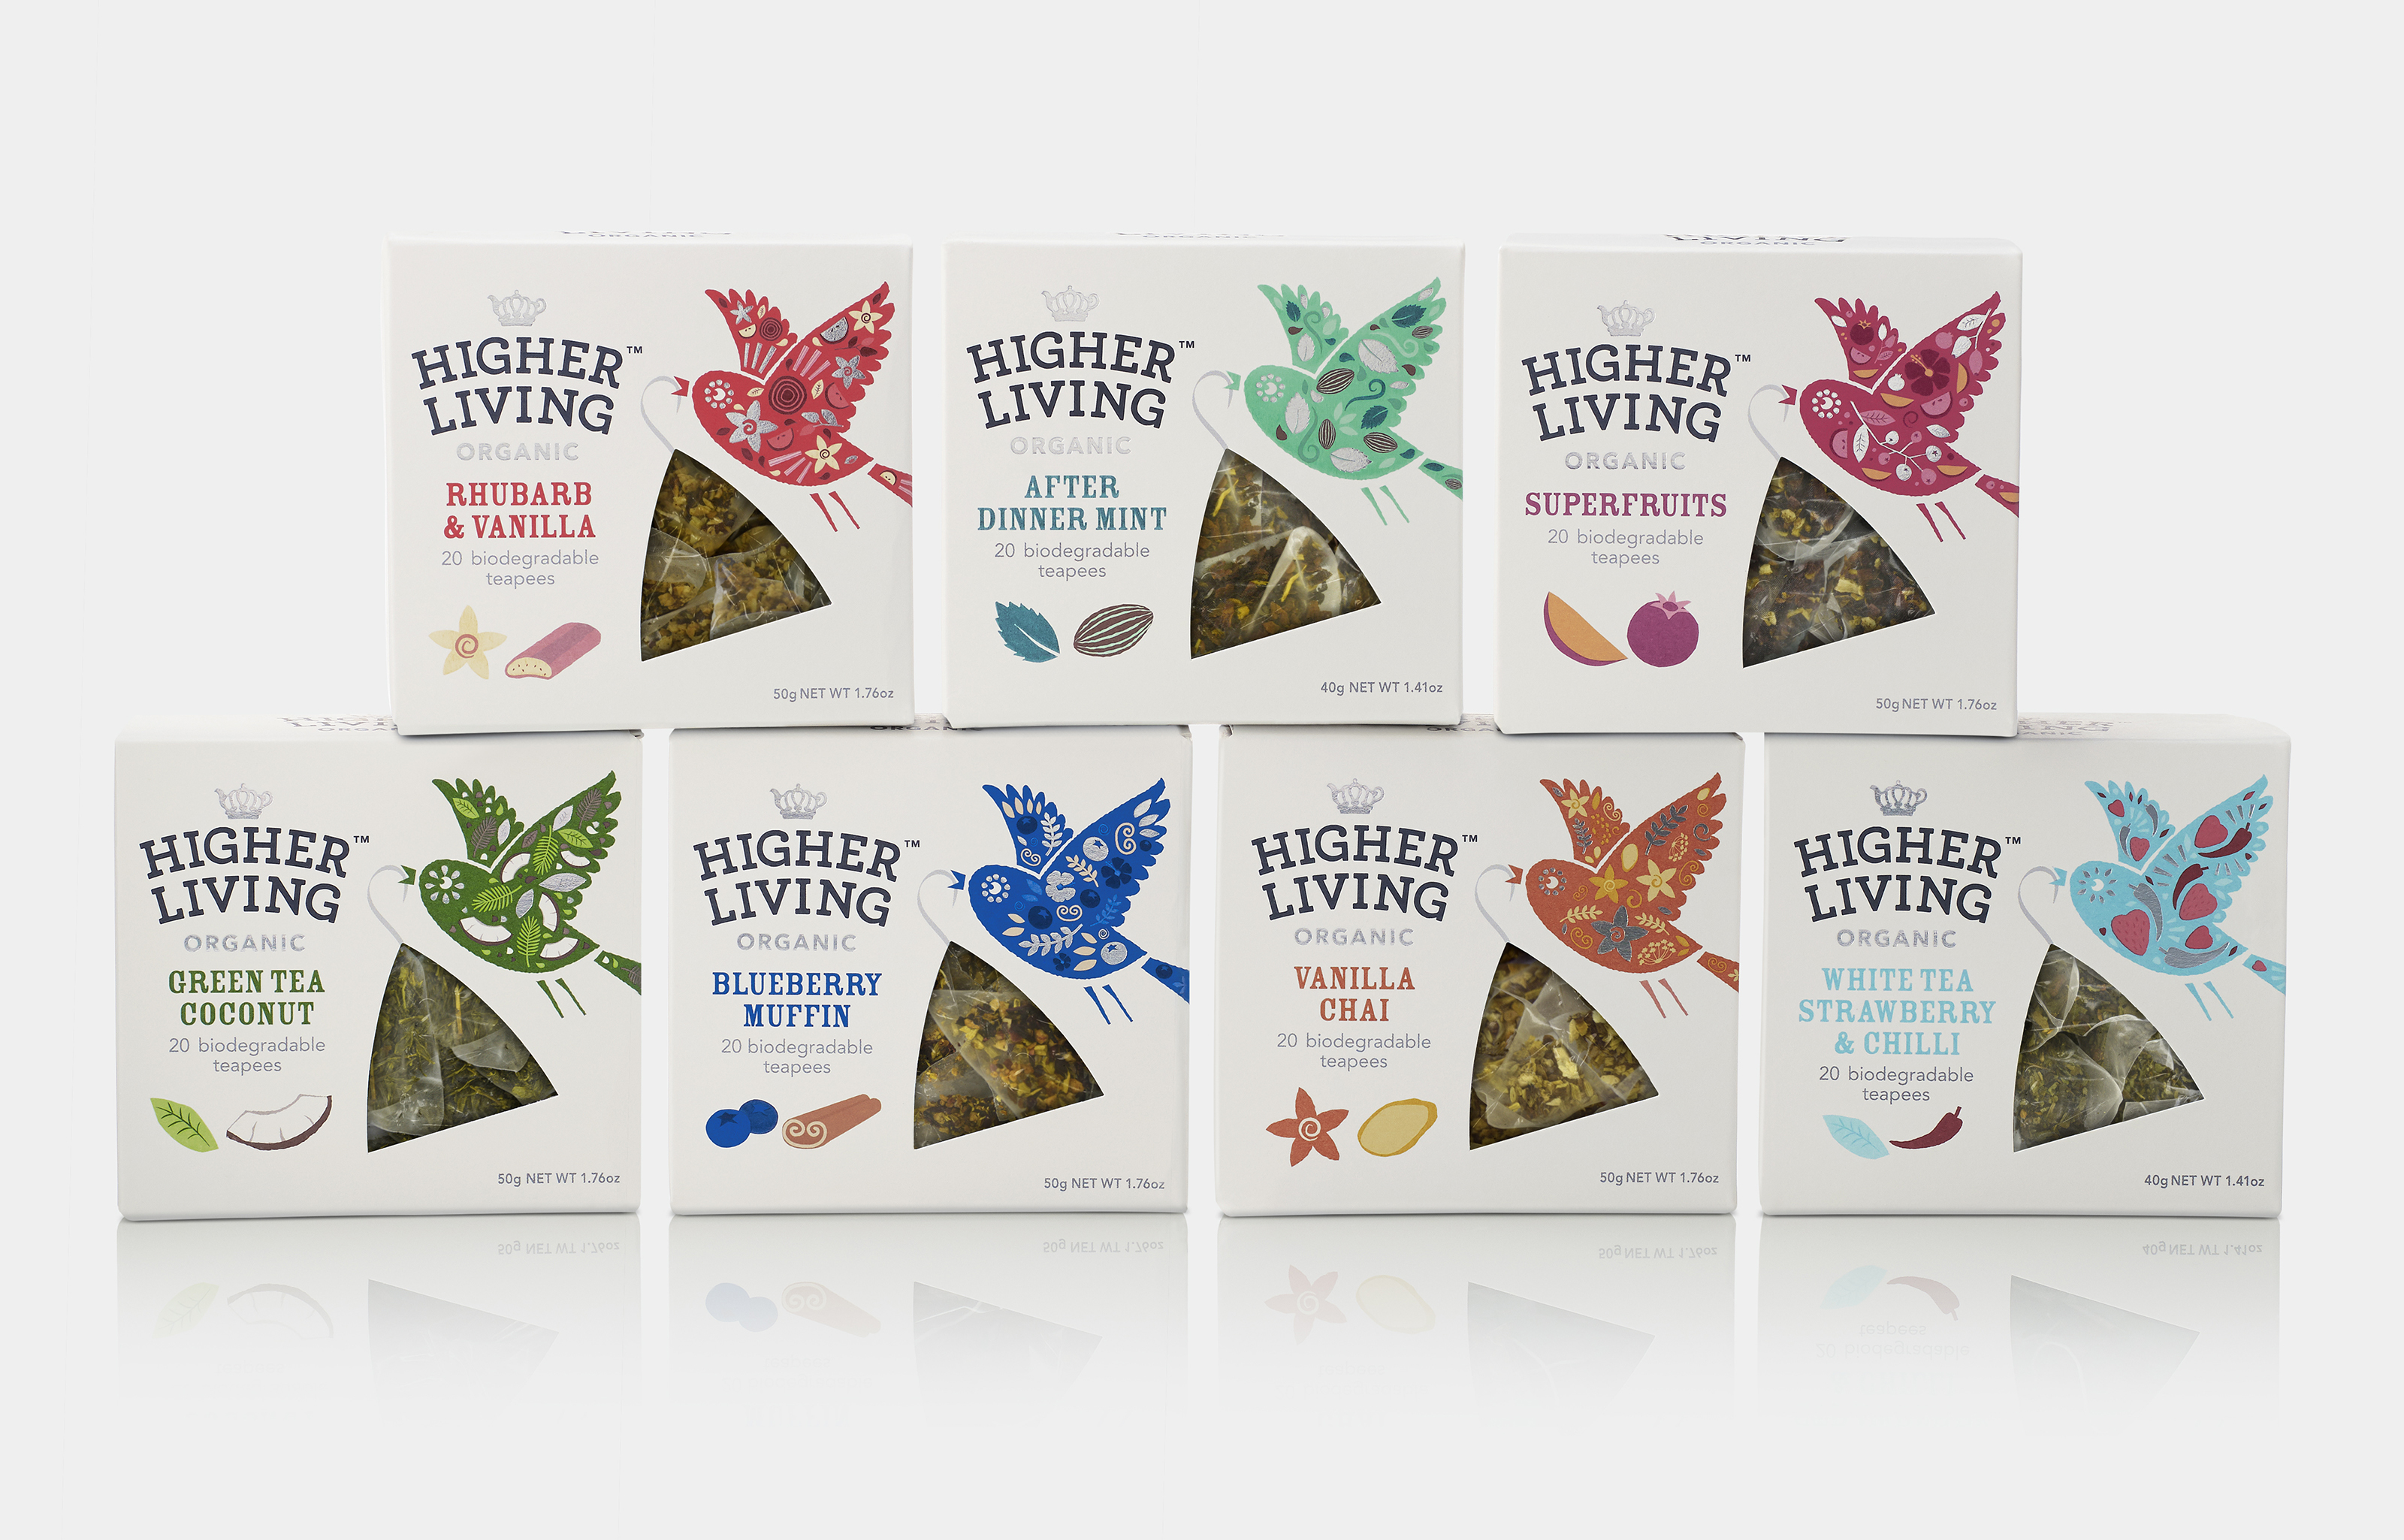 Higher Living Teapees Range